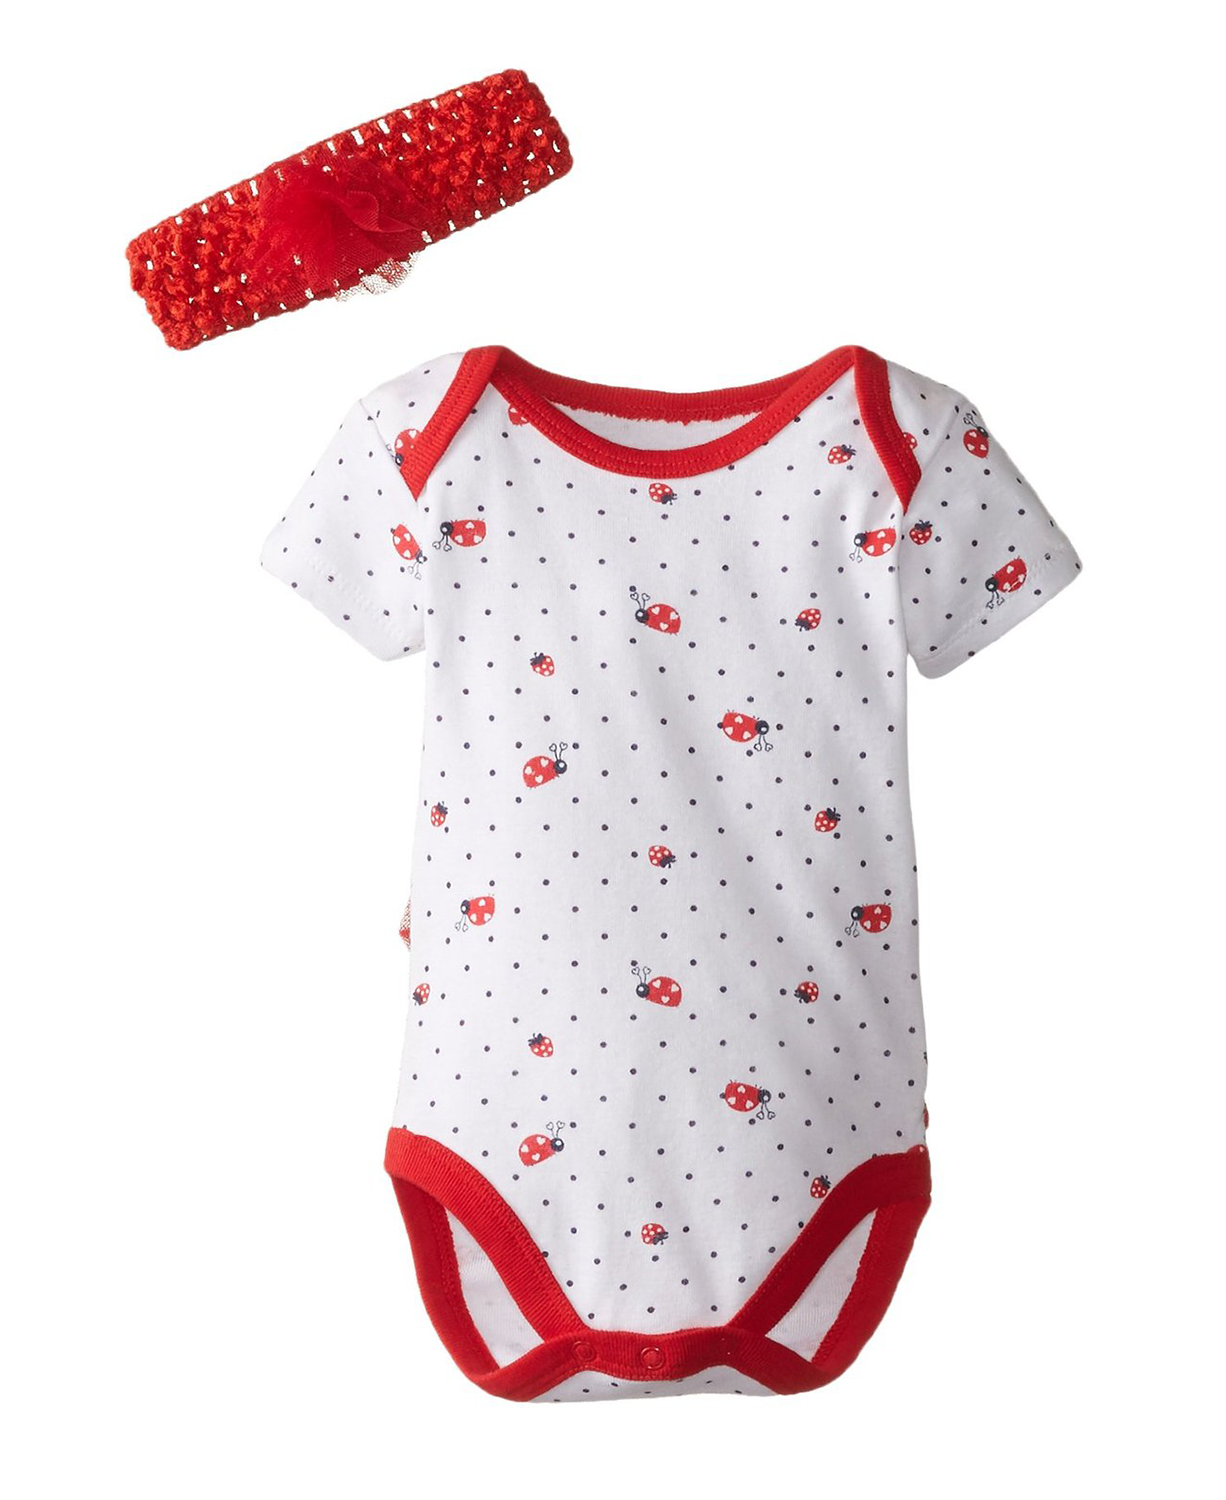 83cdacd7ced1 Cute Vitamins Baby Baby-Girls Newborn Ladybug Print Bodysuit with ...